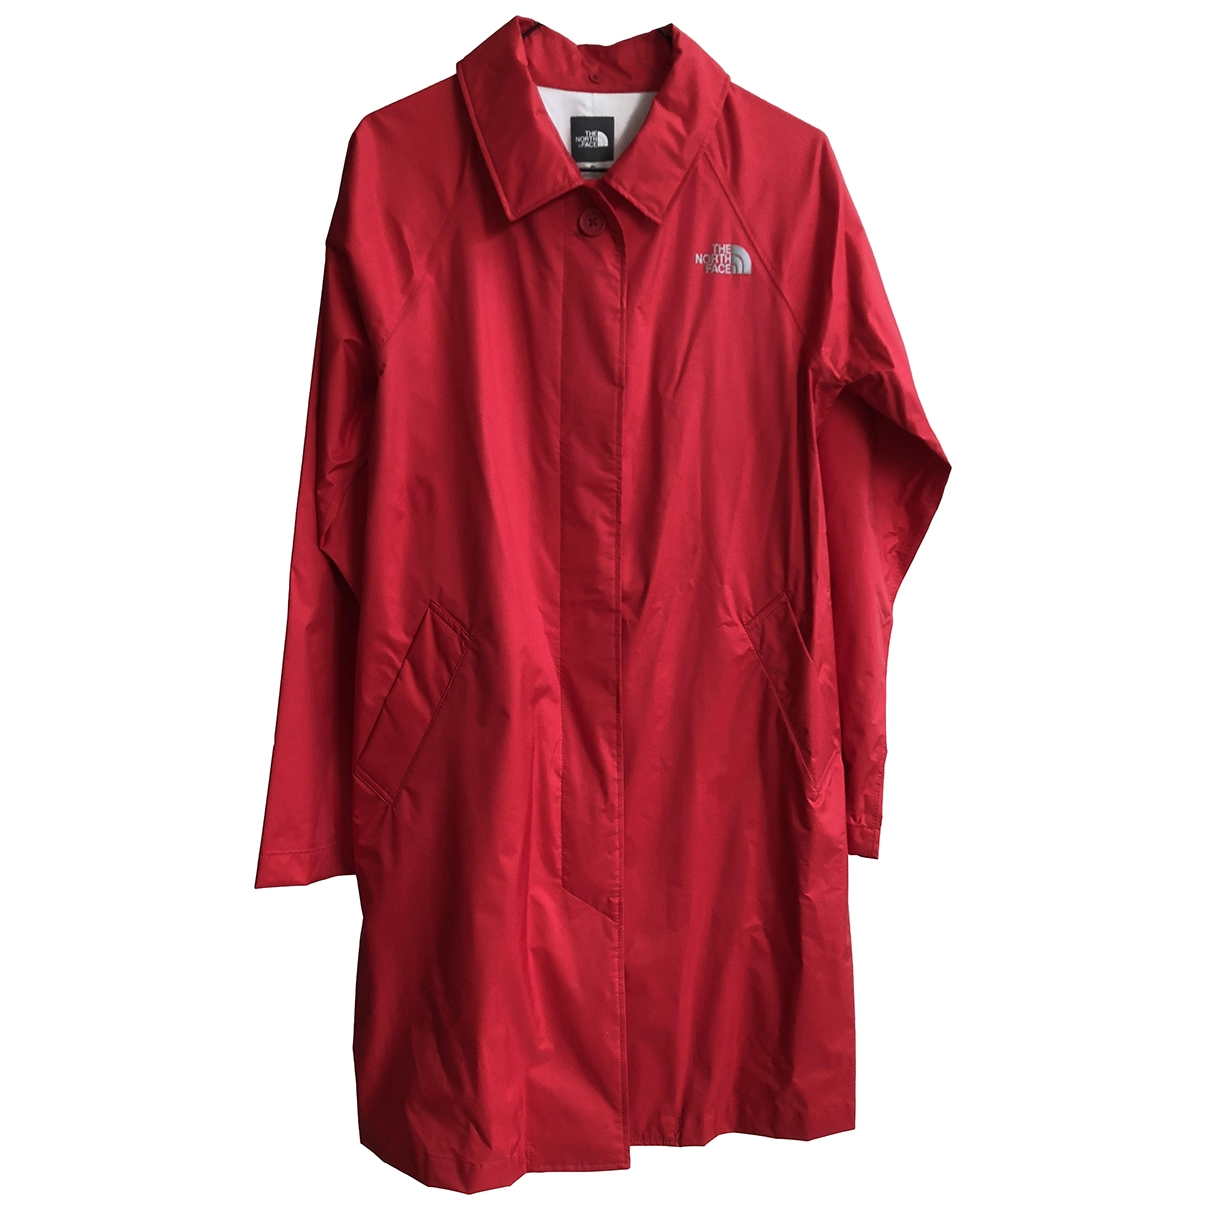 The North Face \N Red coat for Women M International